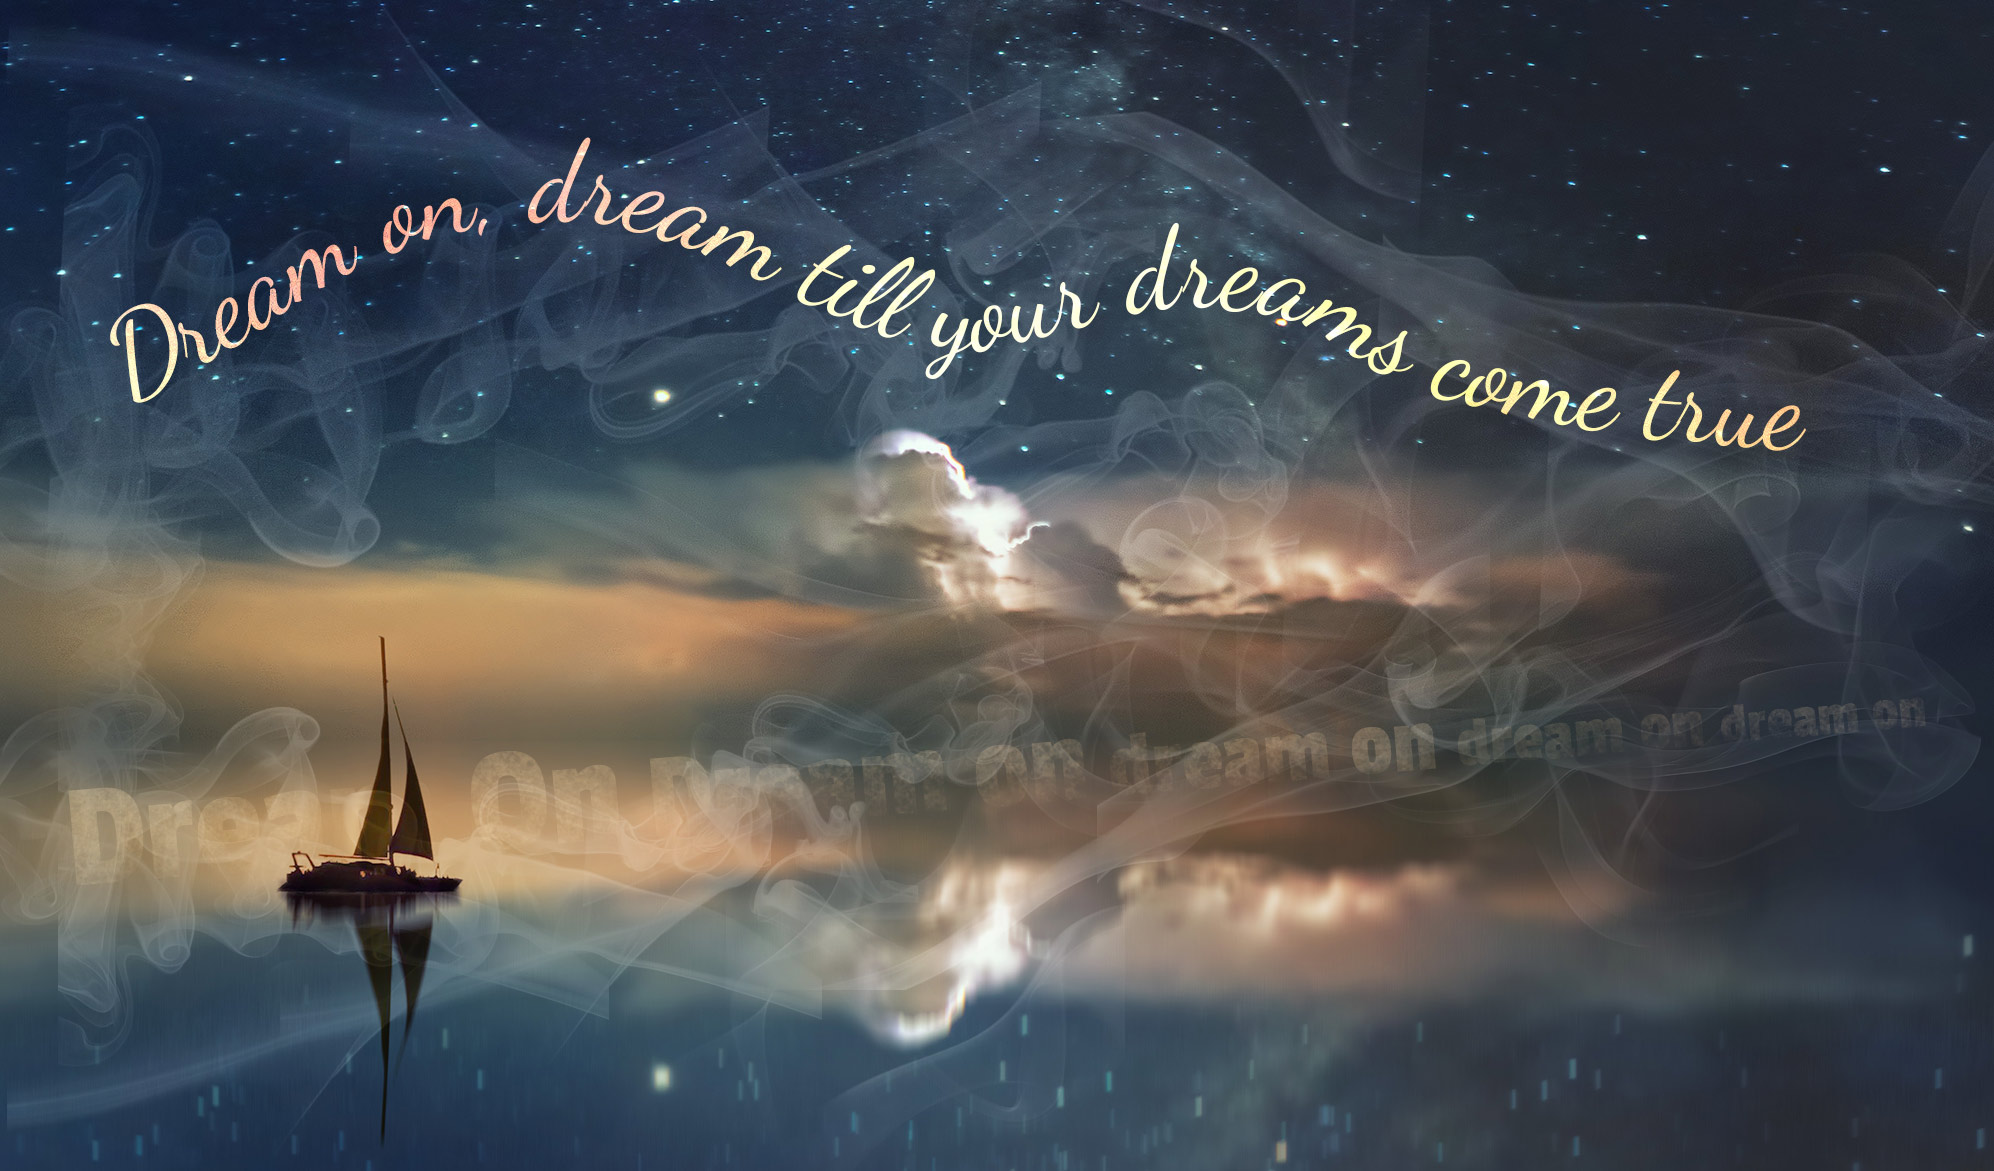 daily inspirational quote image: a dreamlike scene with a sailboat sailing in the sky